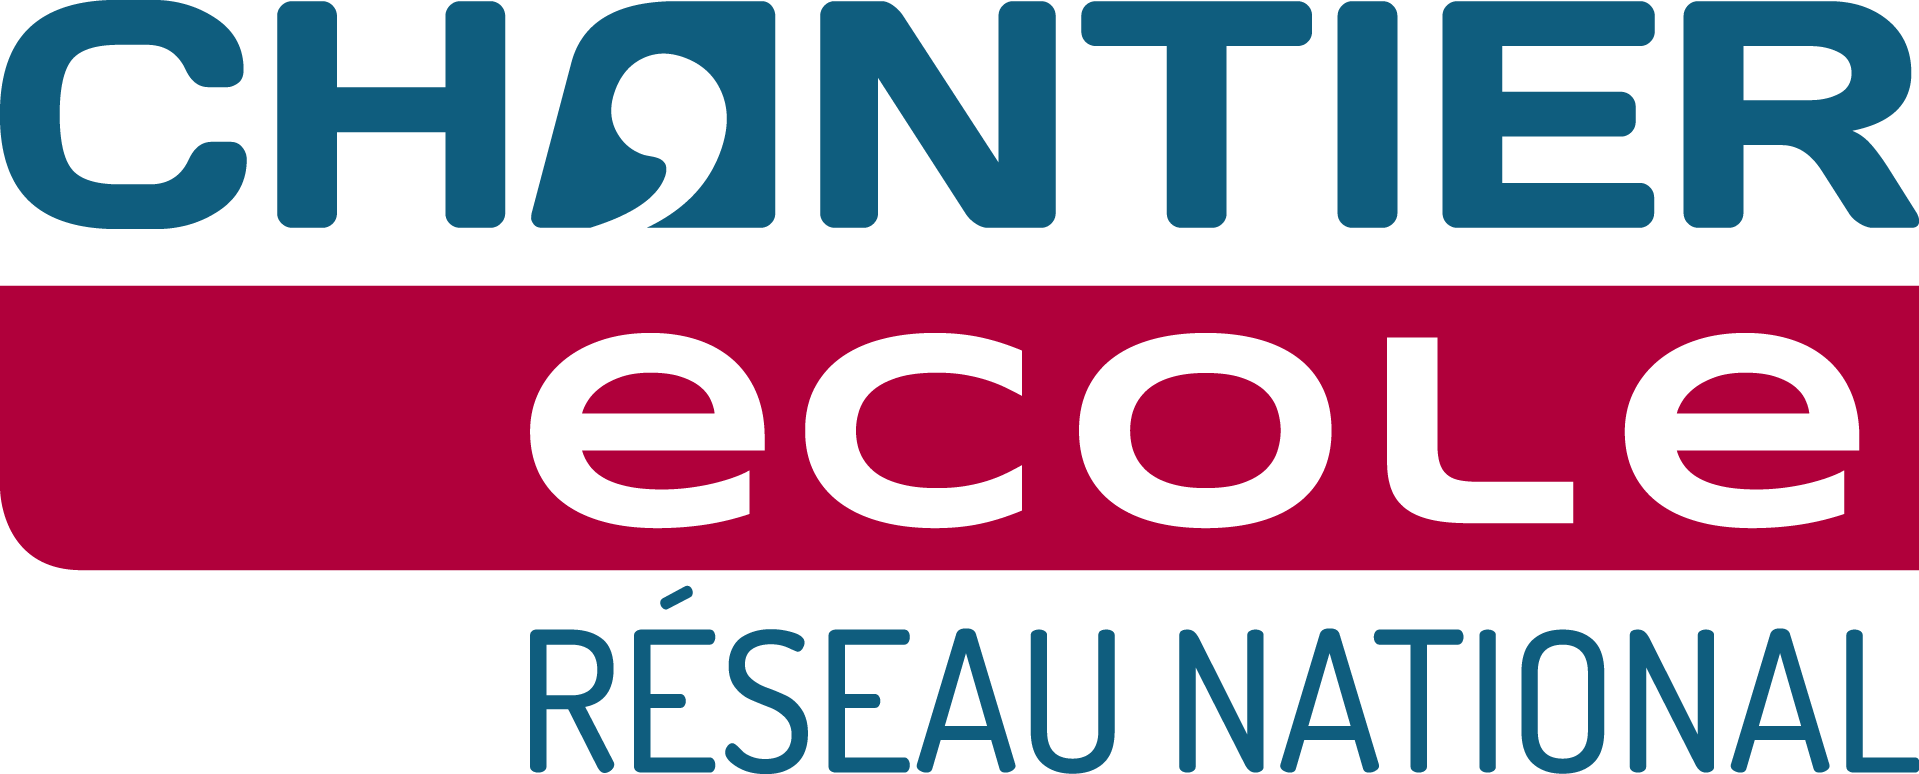 Chantier-Ecole-Logo-National.png